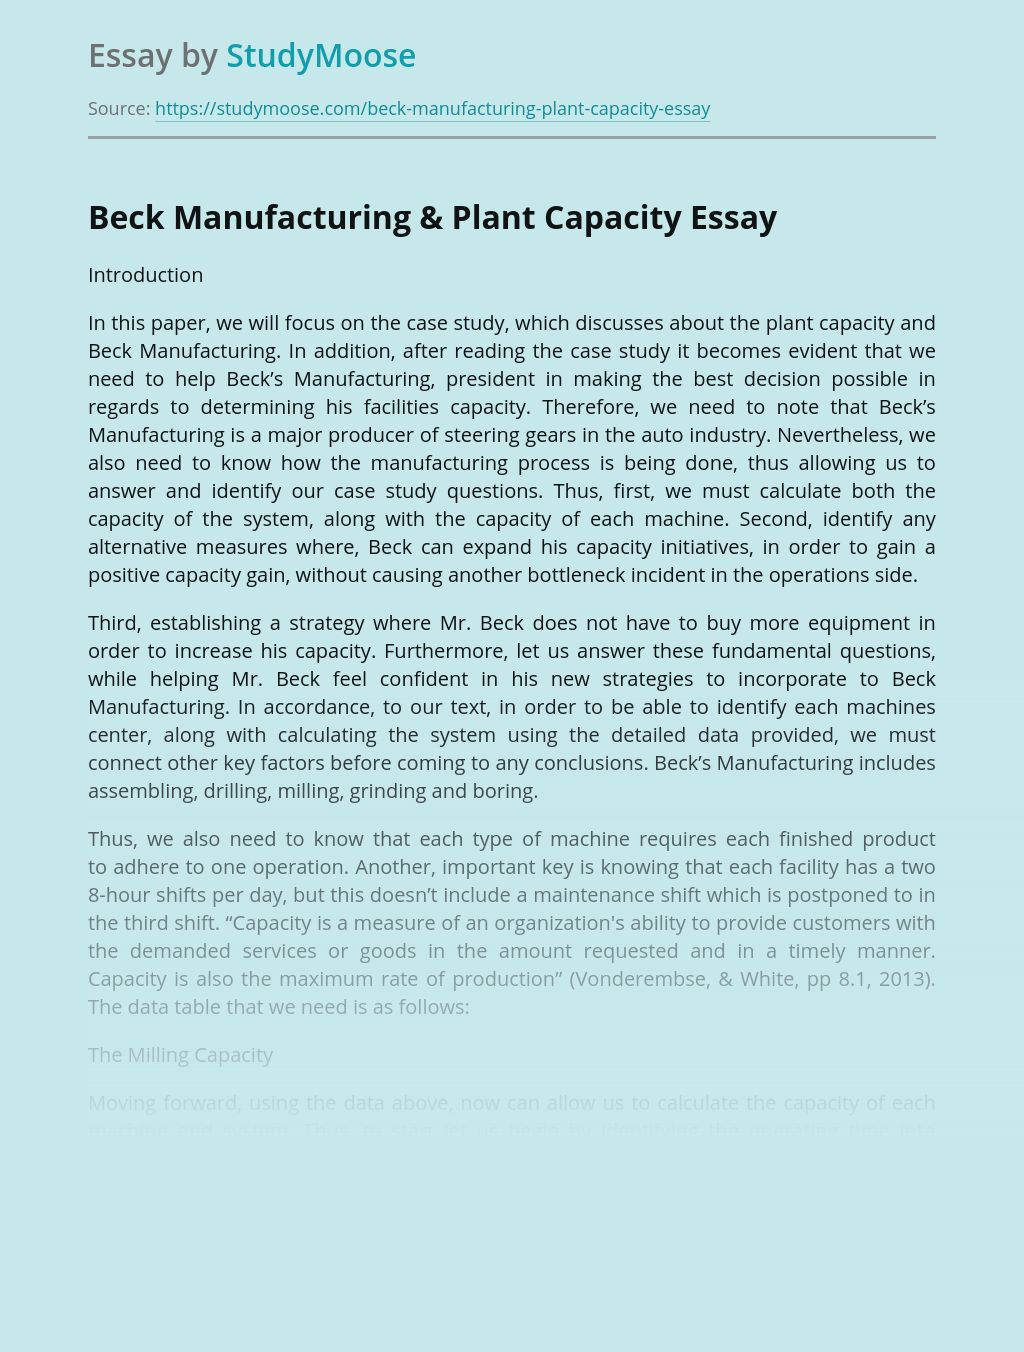 Beck Manufacturing & Plant Capacity